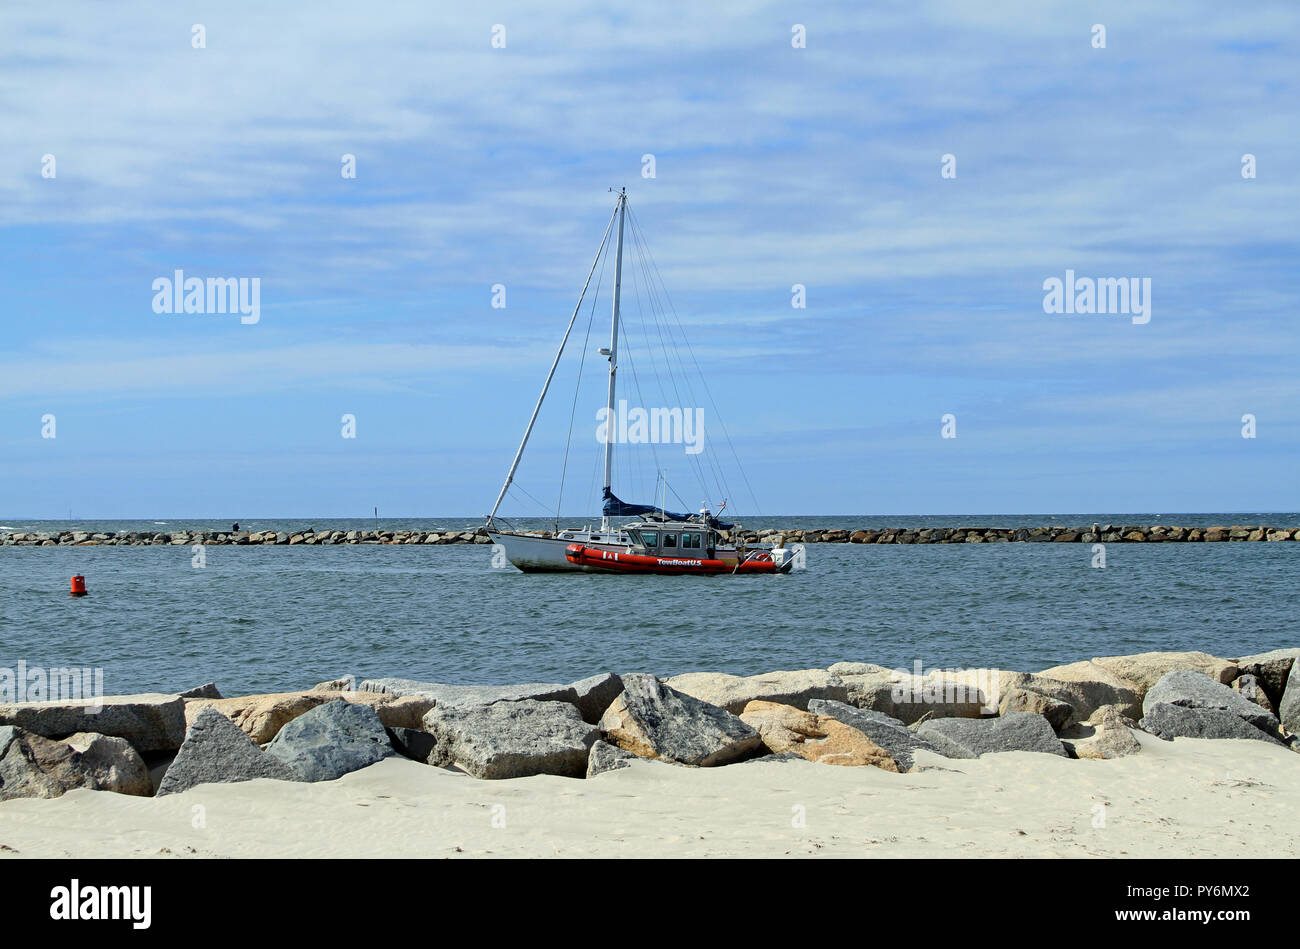 A disabled sailboat being pulled by a TowBoat U.S. through the jetty marking the entrance to Sesuit Harbor on Cape Cod in East Dennis, Massachusetts - Stock Image